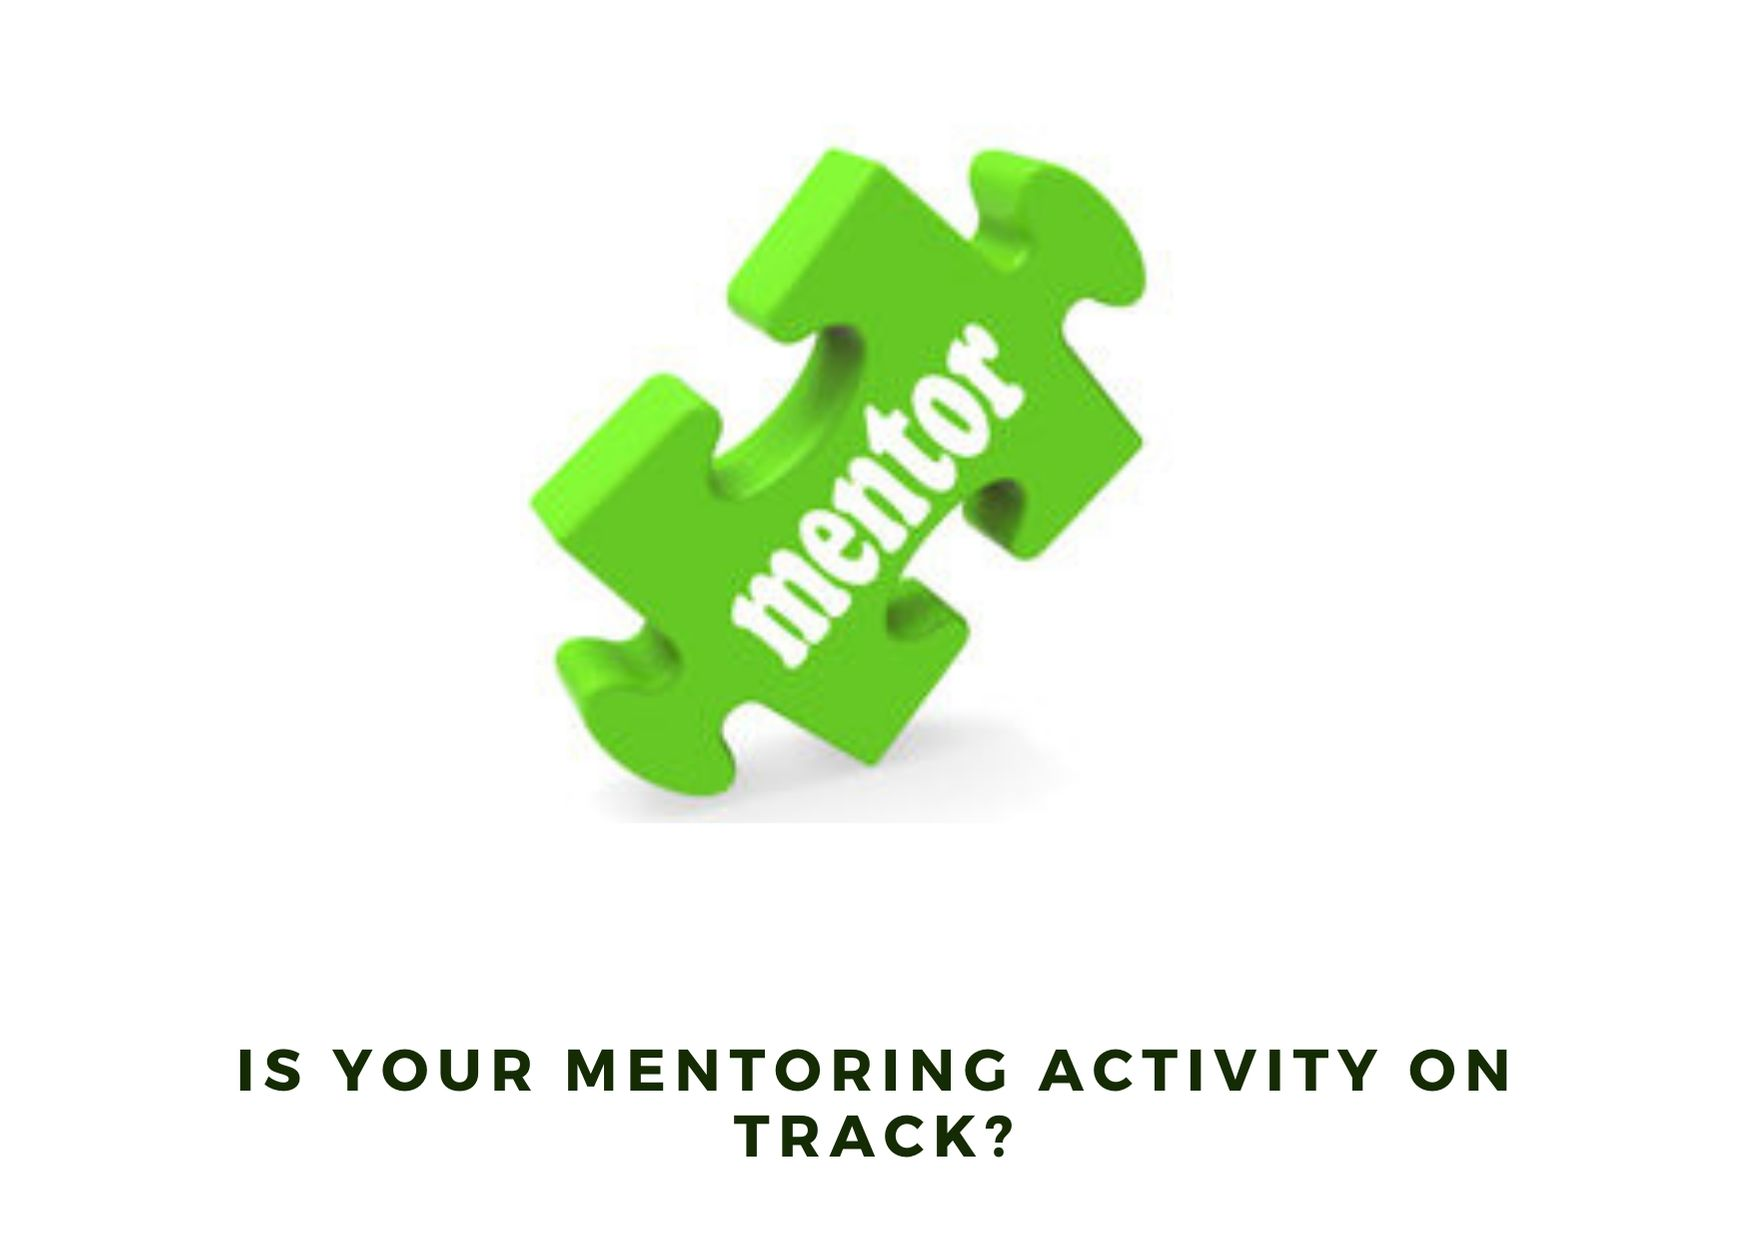 is your mentoring activity on track